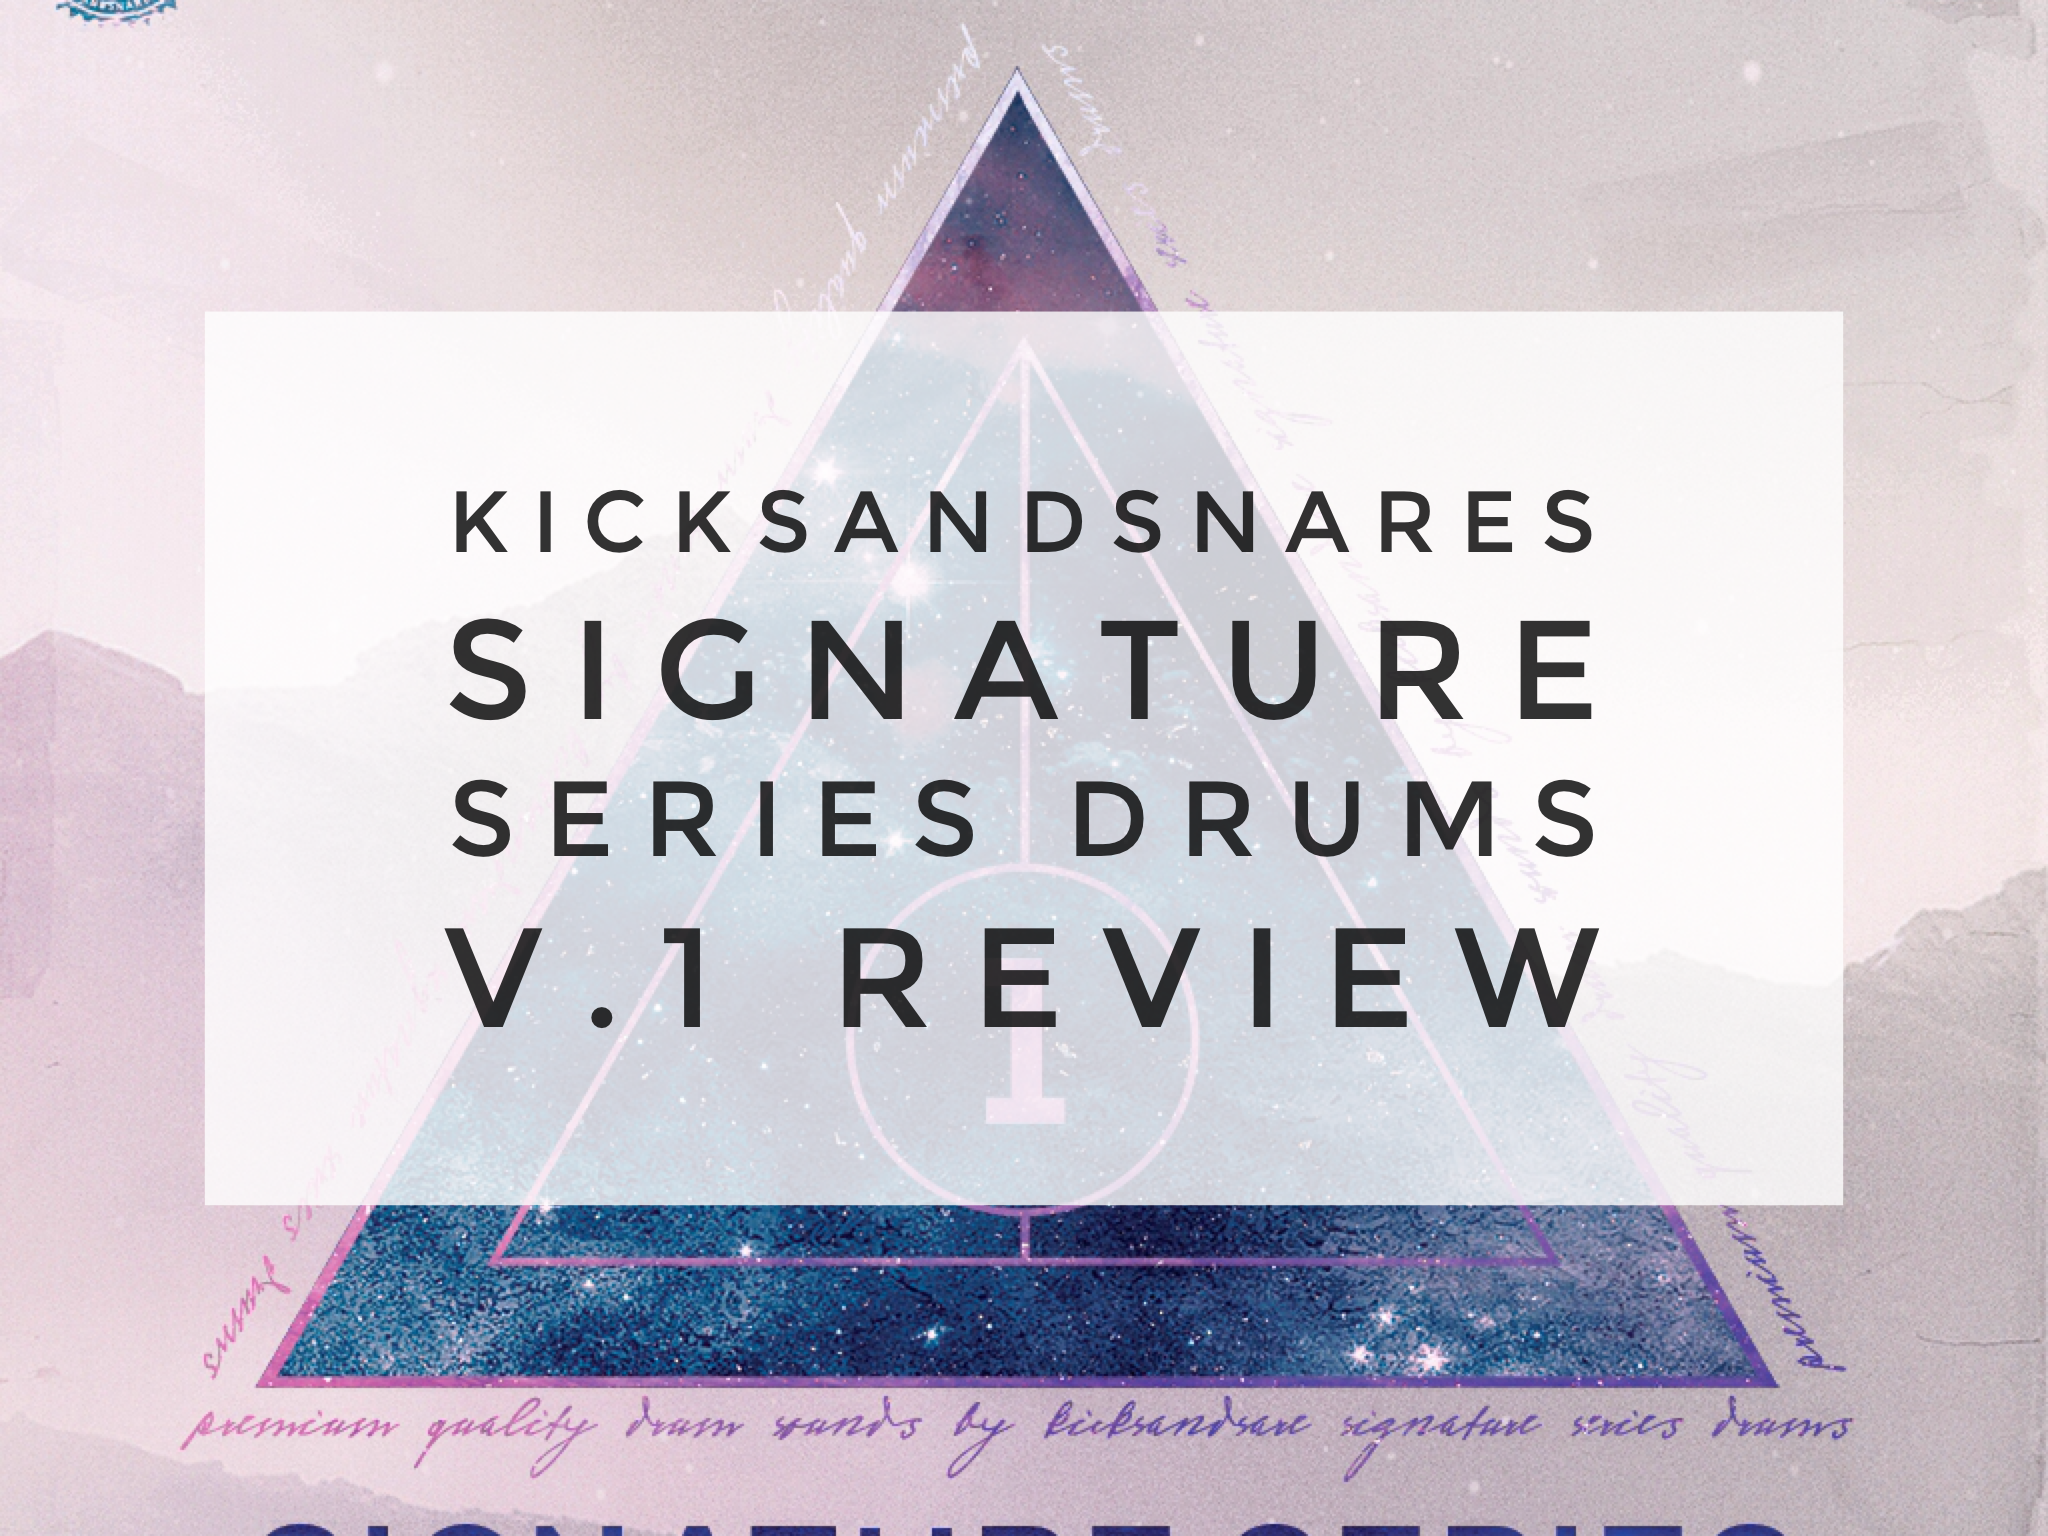 KICKSANDSNARES Signature Series Drums V.1 Review